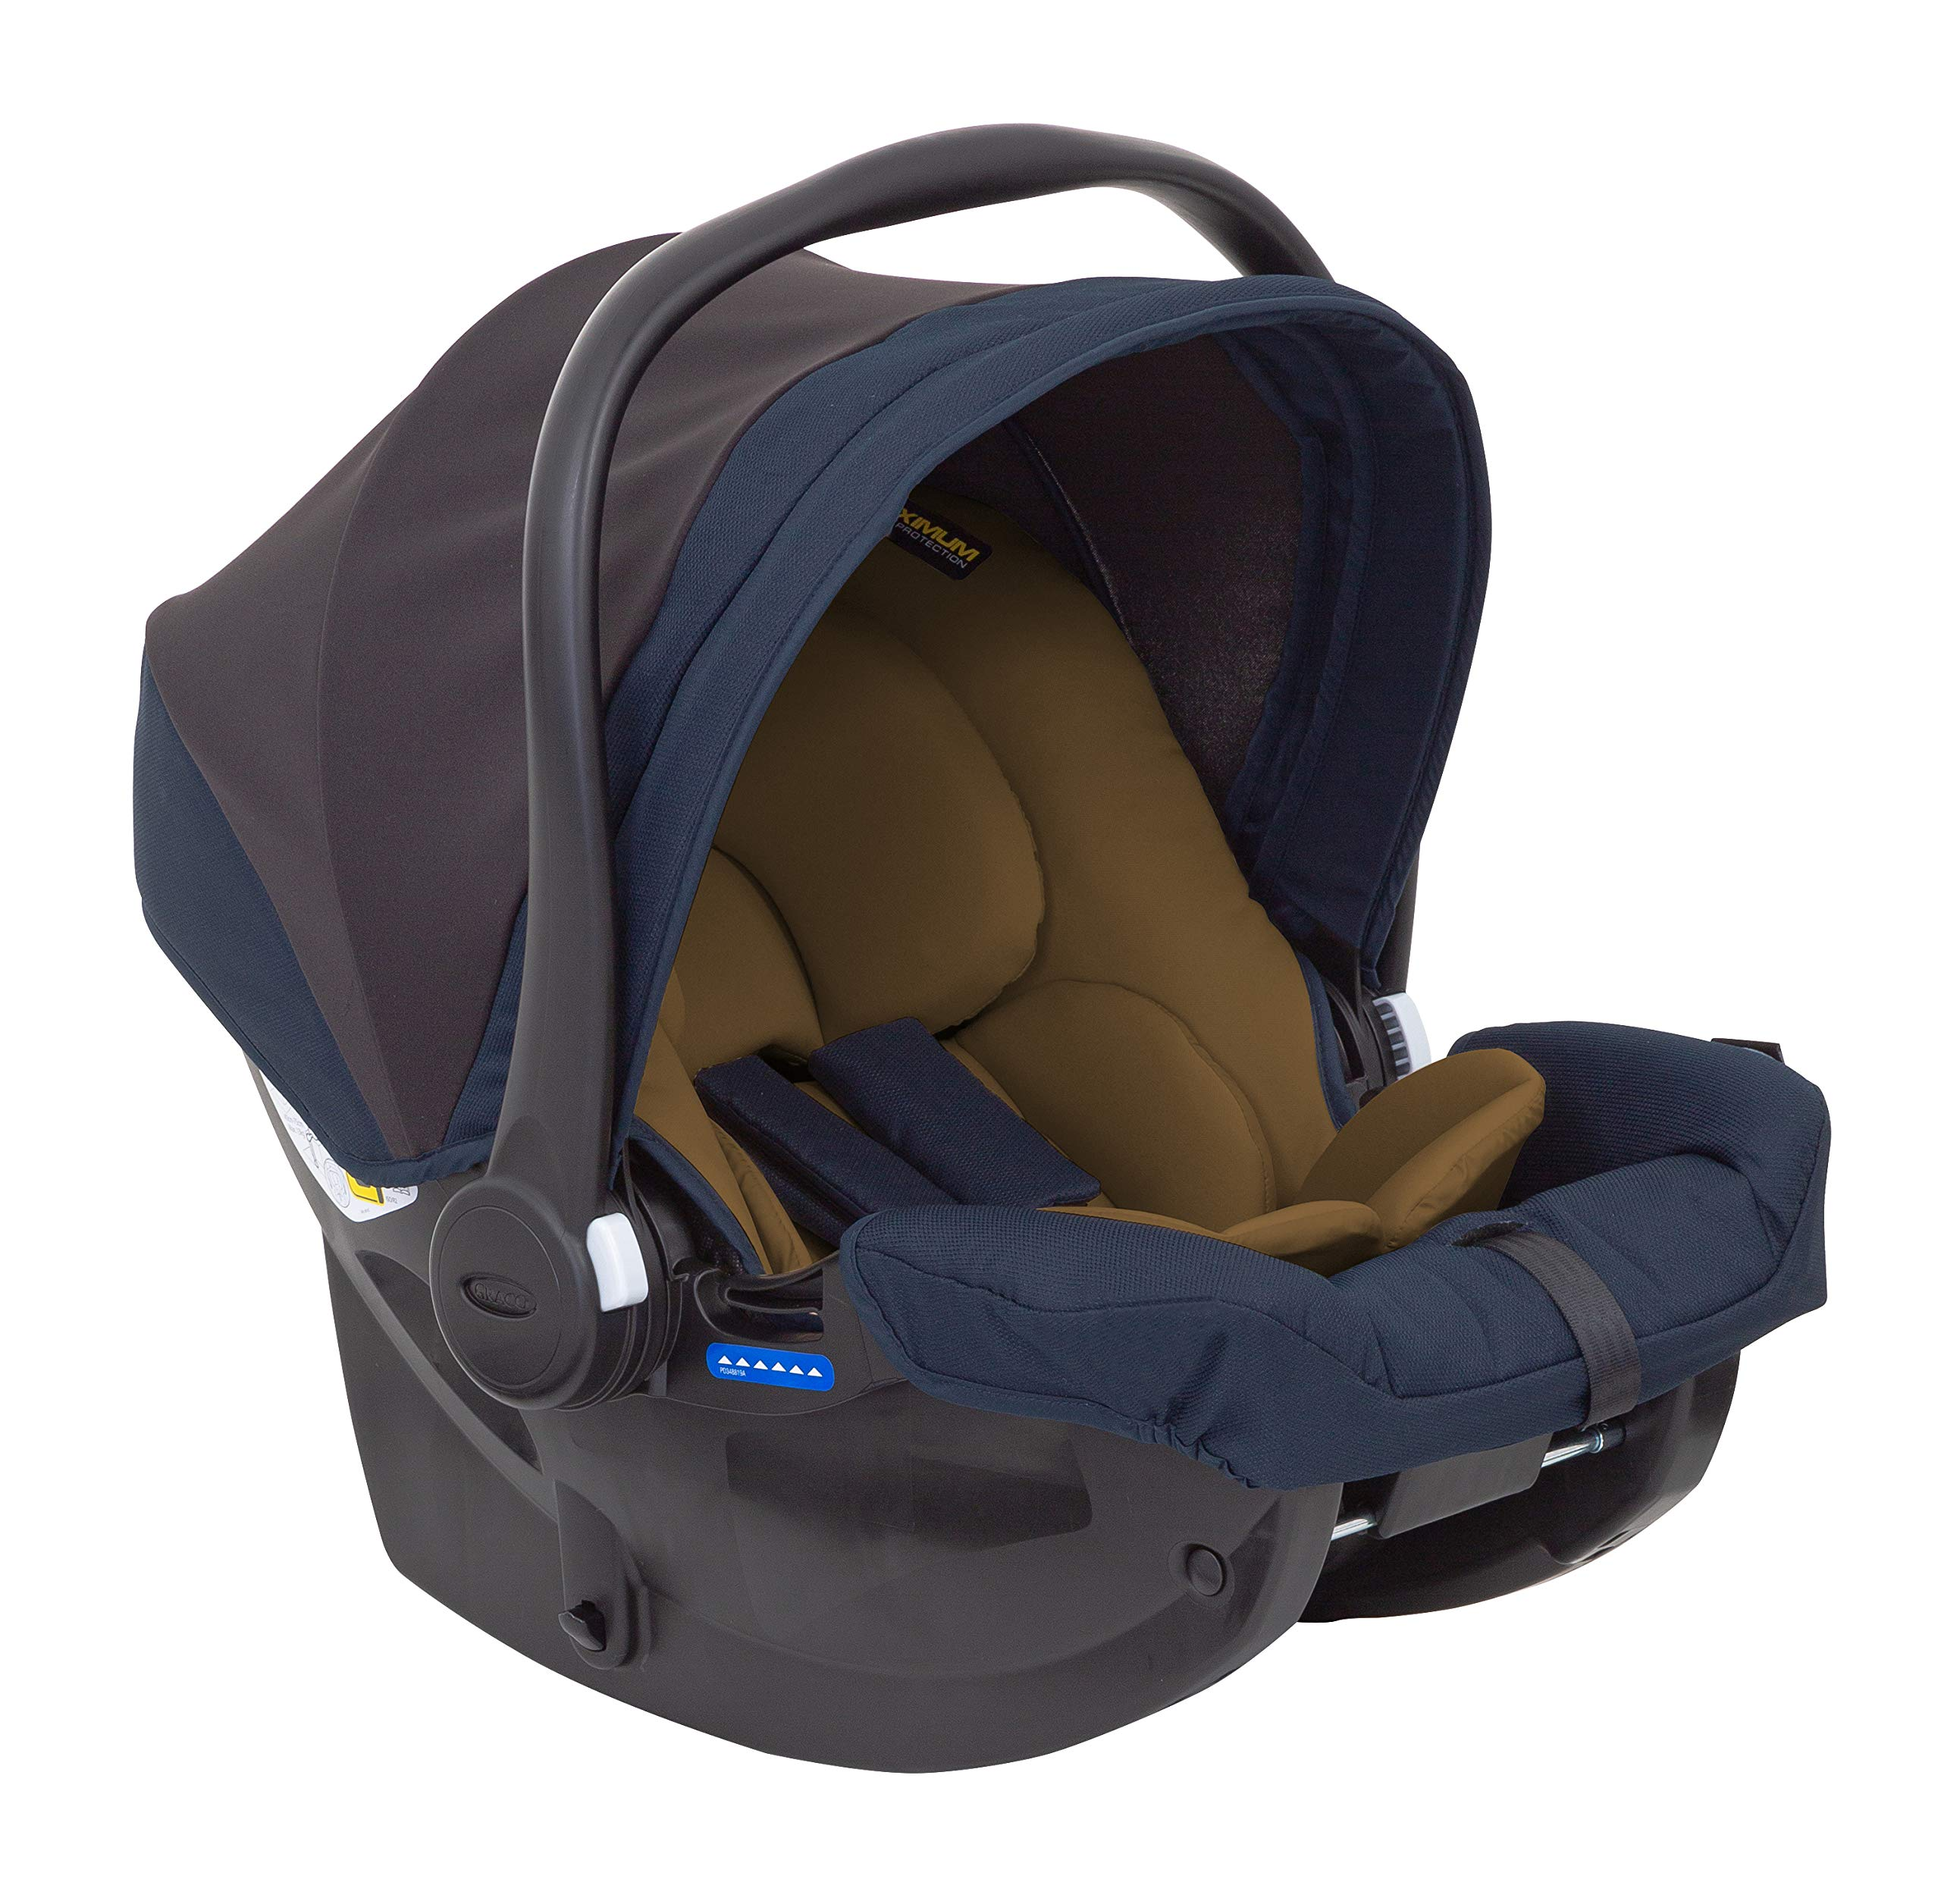 Graco Breaze Lite i-Size Travel System, Eclipse Graco From birth to 3 years approx. (0-15kg) Travel system package with snug essentials isize infant car seat included Lightweight stroller at only 6.5kg 5